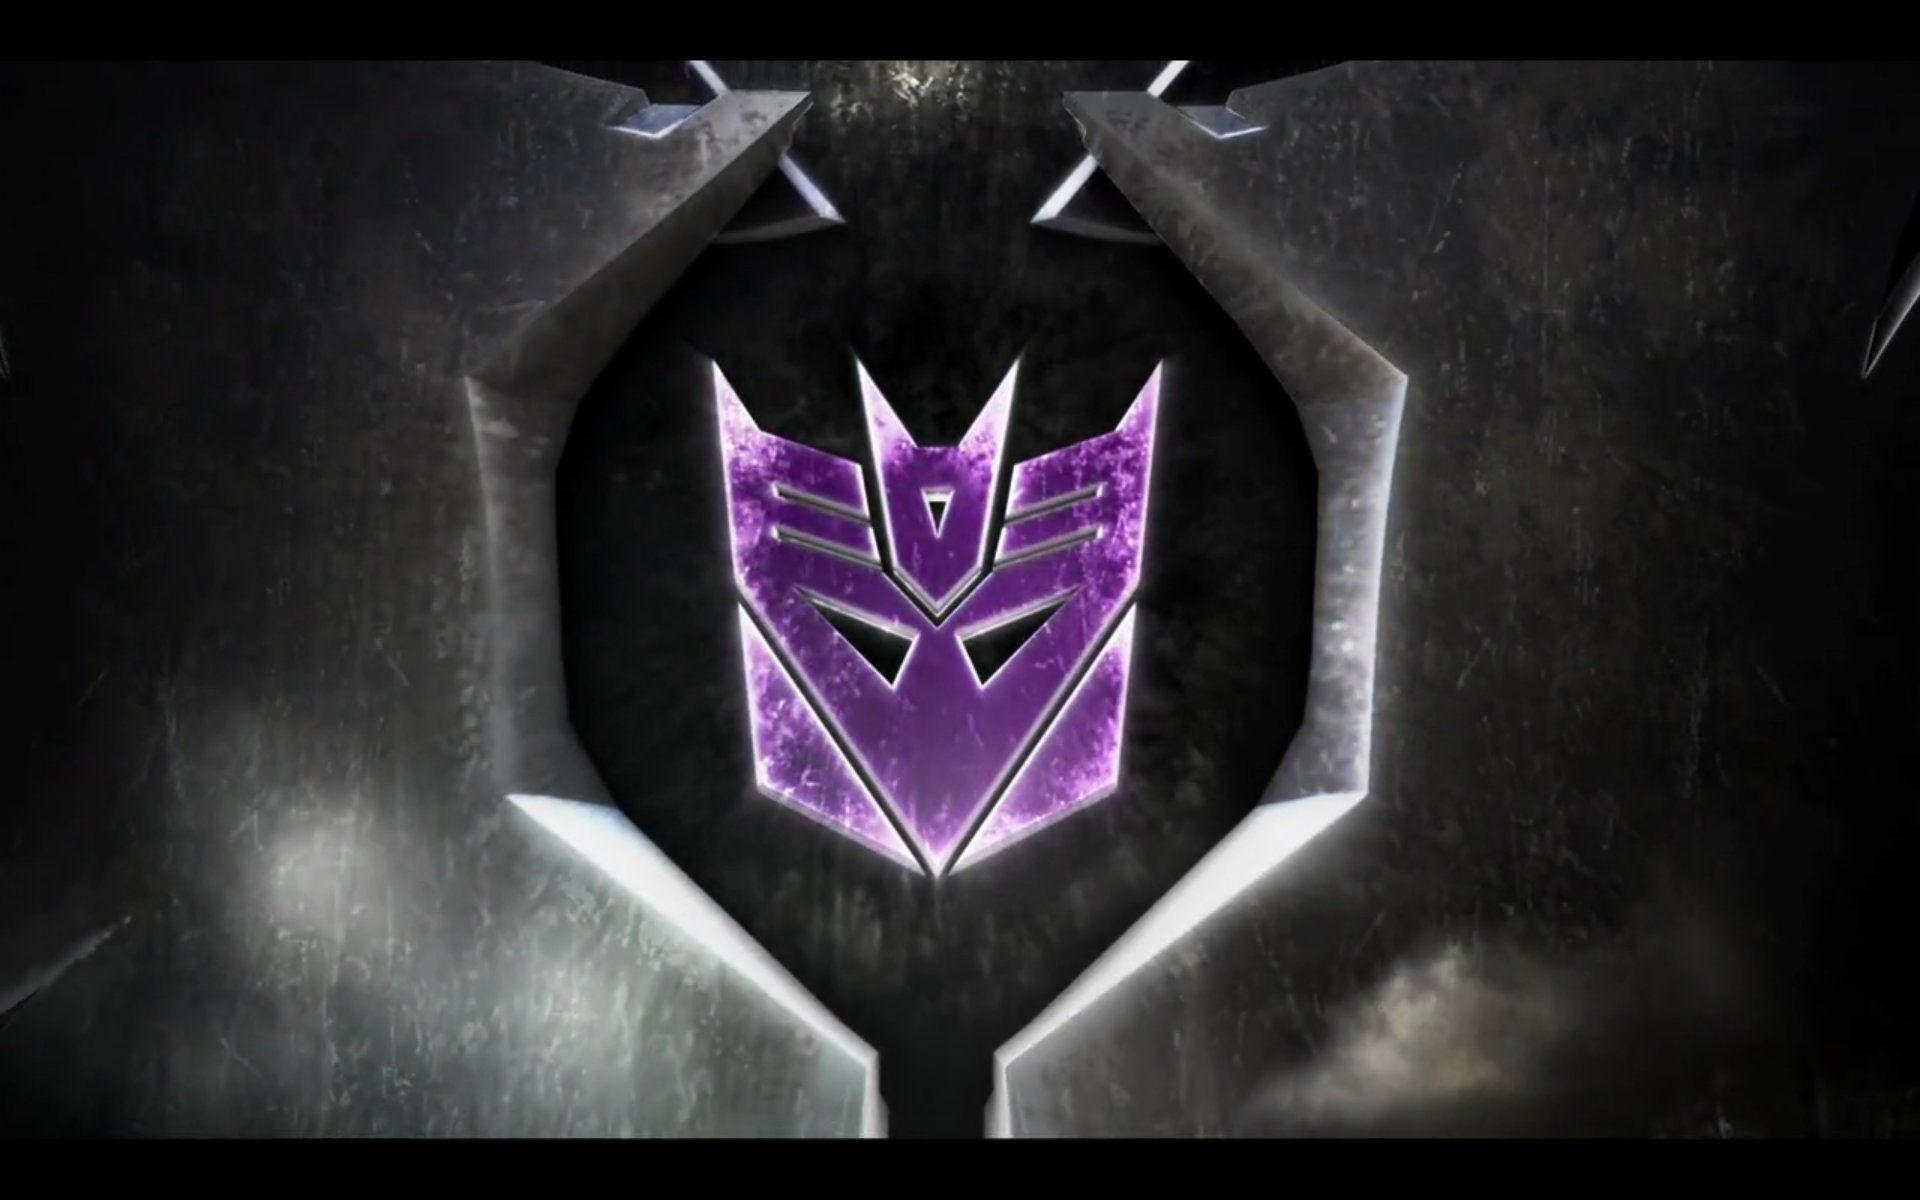 Anime Cellphone Wallpaper Transformers Decepticons Wallpapers Wallpaper Cave